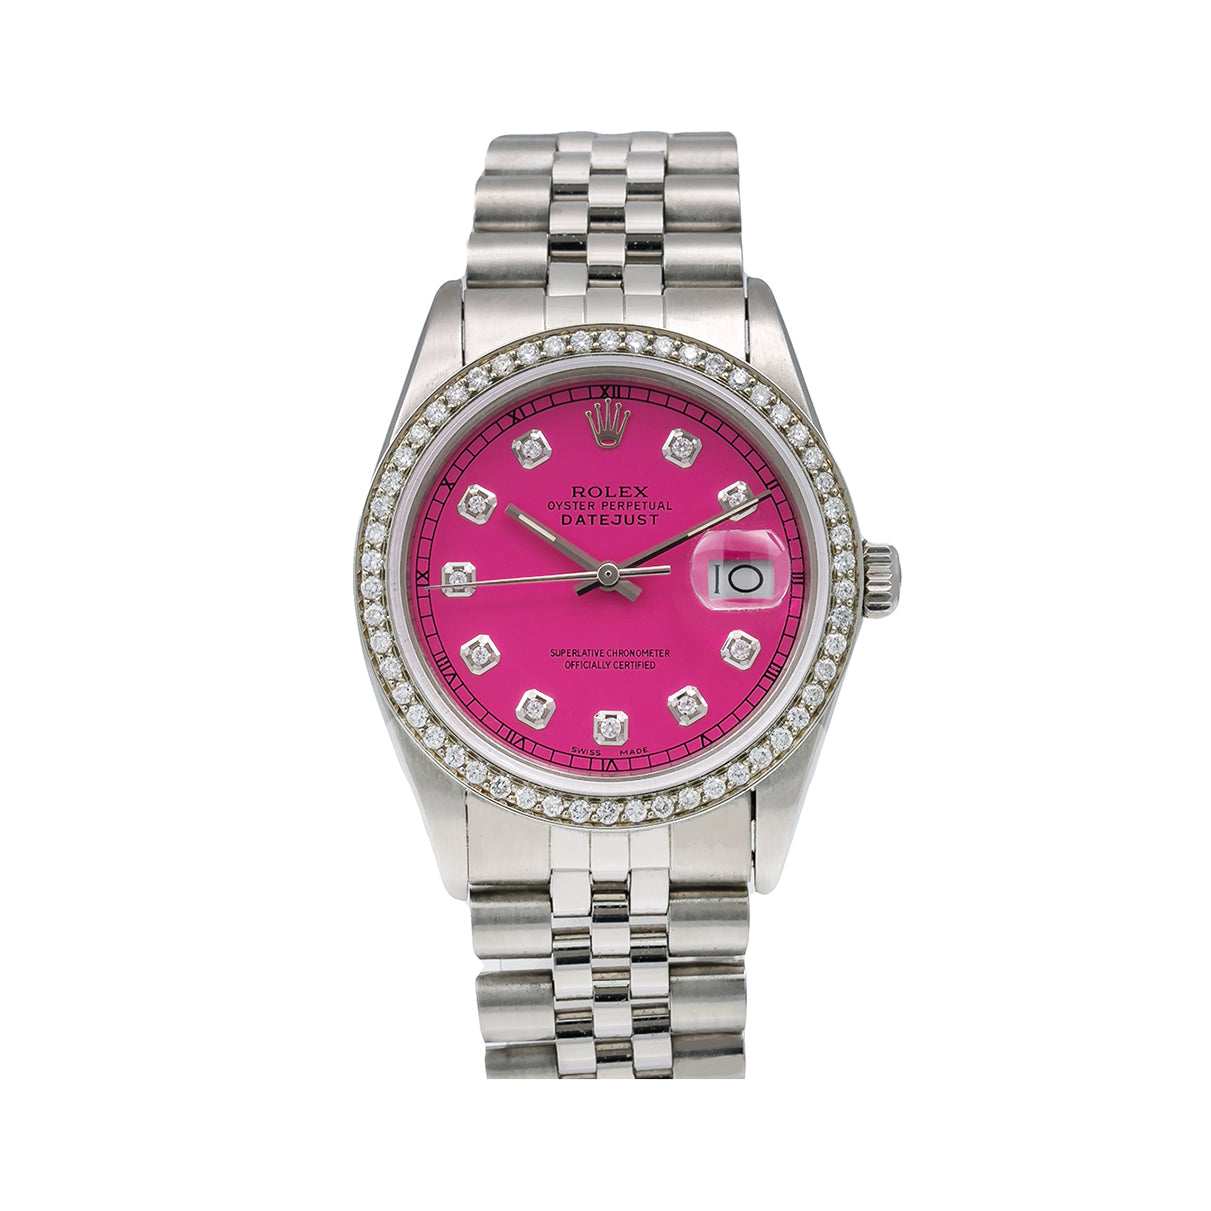 Rolex Datejust Diamond Watch, 16030 36mm, Pink Diamond Dial With 1.20 CT Diamonds